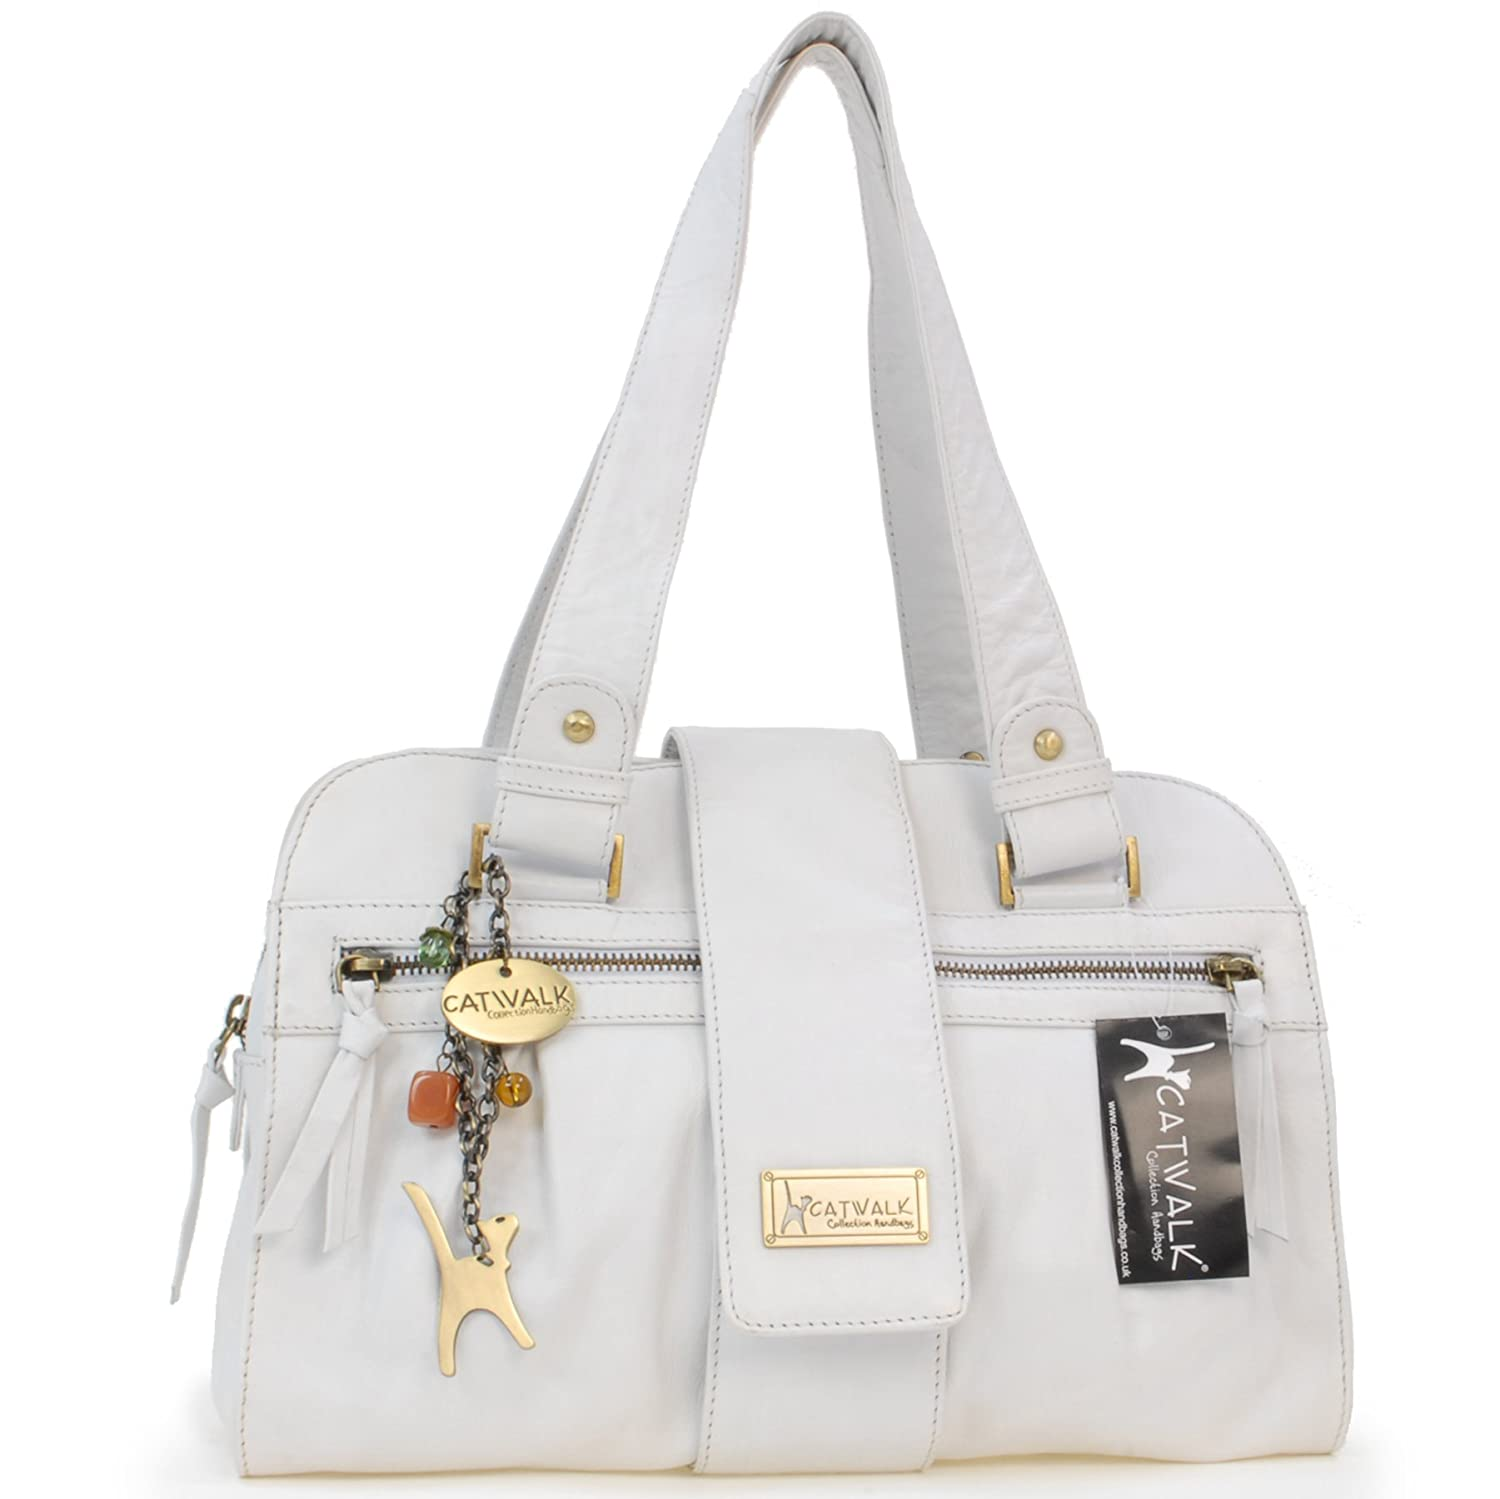 Catwalk Collection Handbags Womens Leather Top Handle Shoulder Zara Double Strap Bag White Shoes Bags